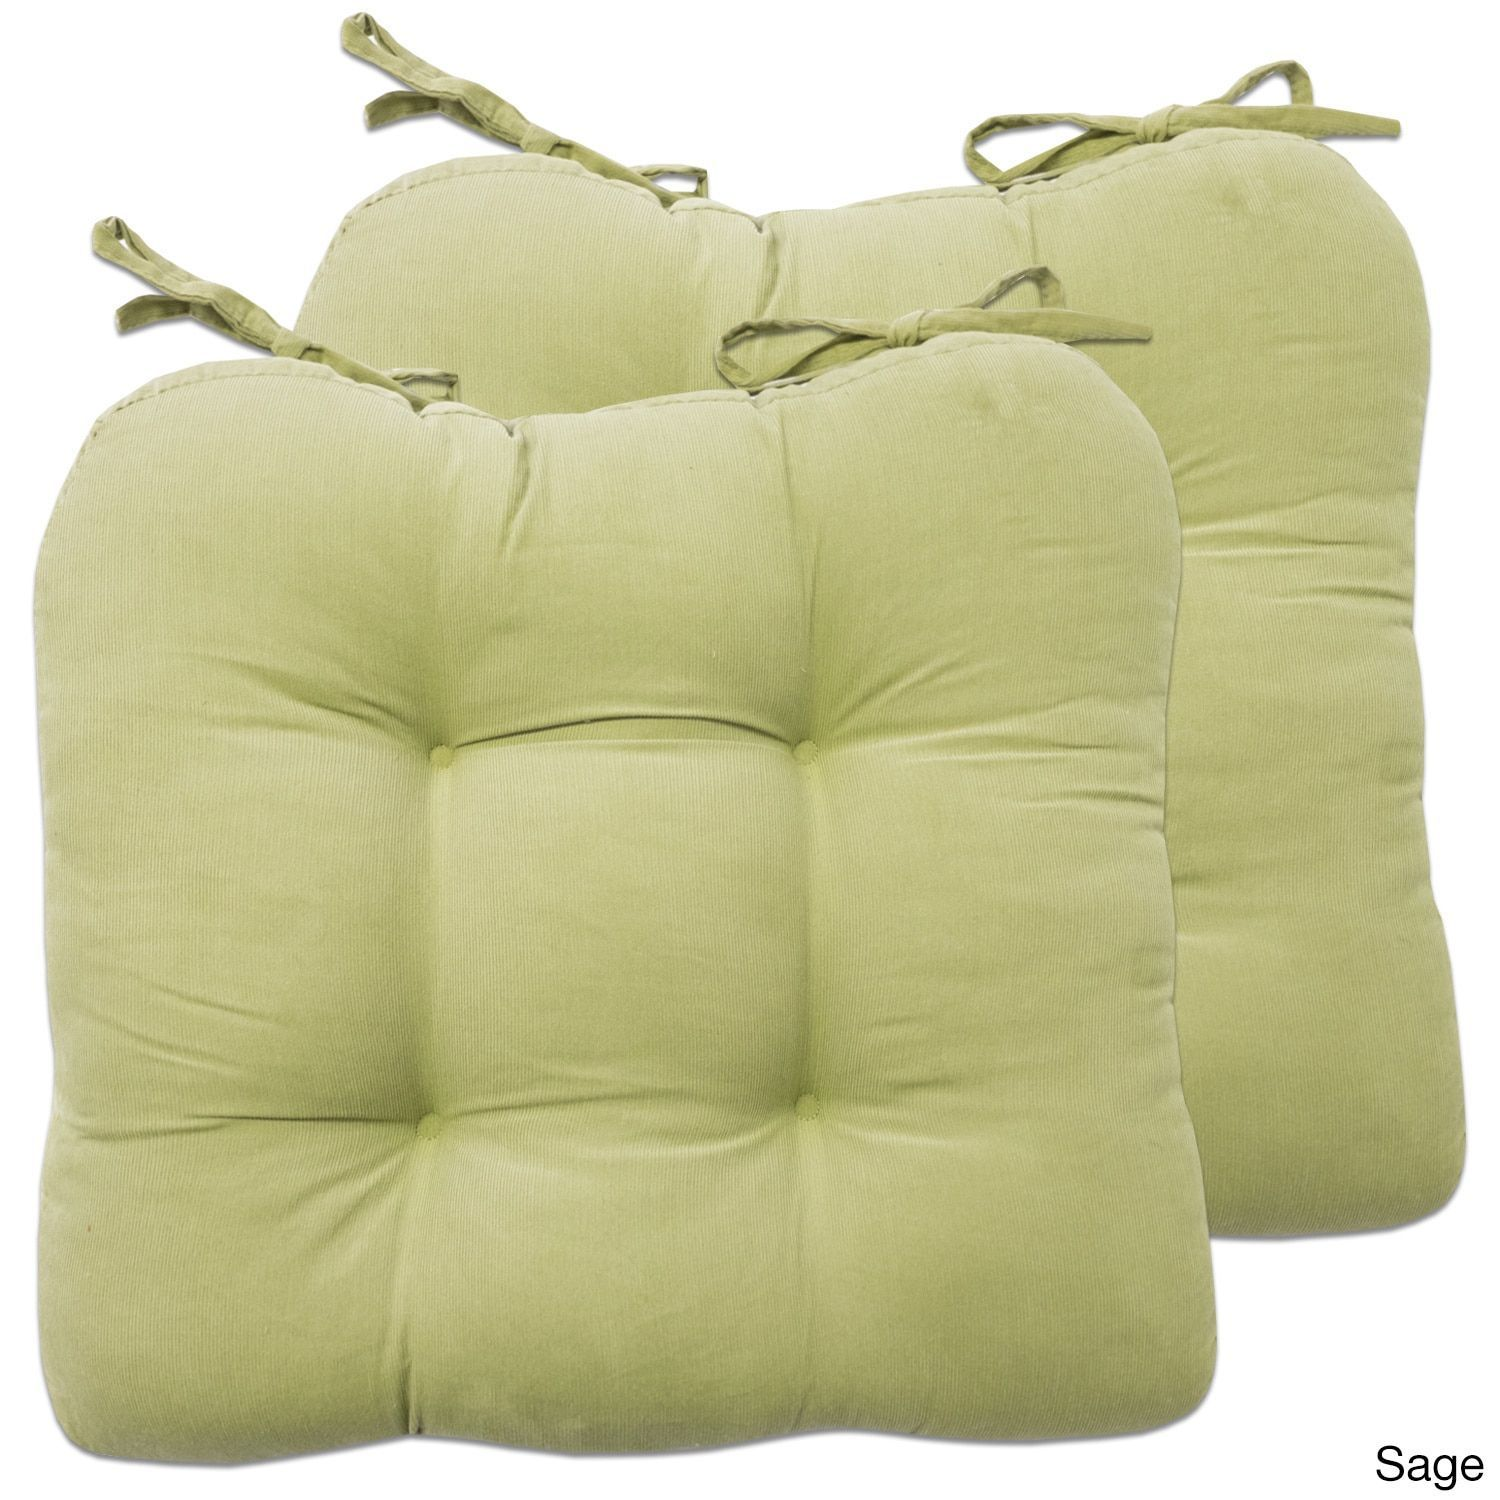 chair cushions with tie backs contemporary rocking chairs 2 piece corduroy pad tiebacks 16 x16 assorted colors set of sage green cotton solid